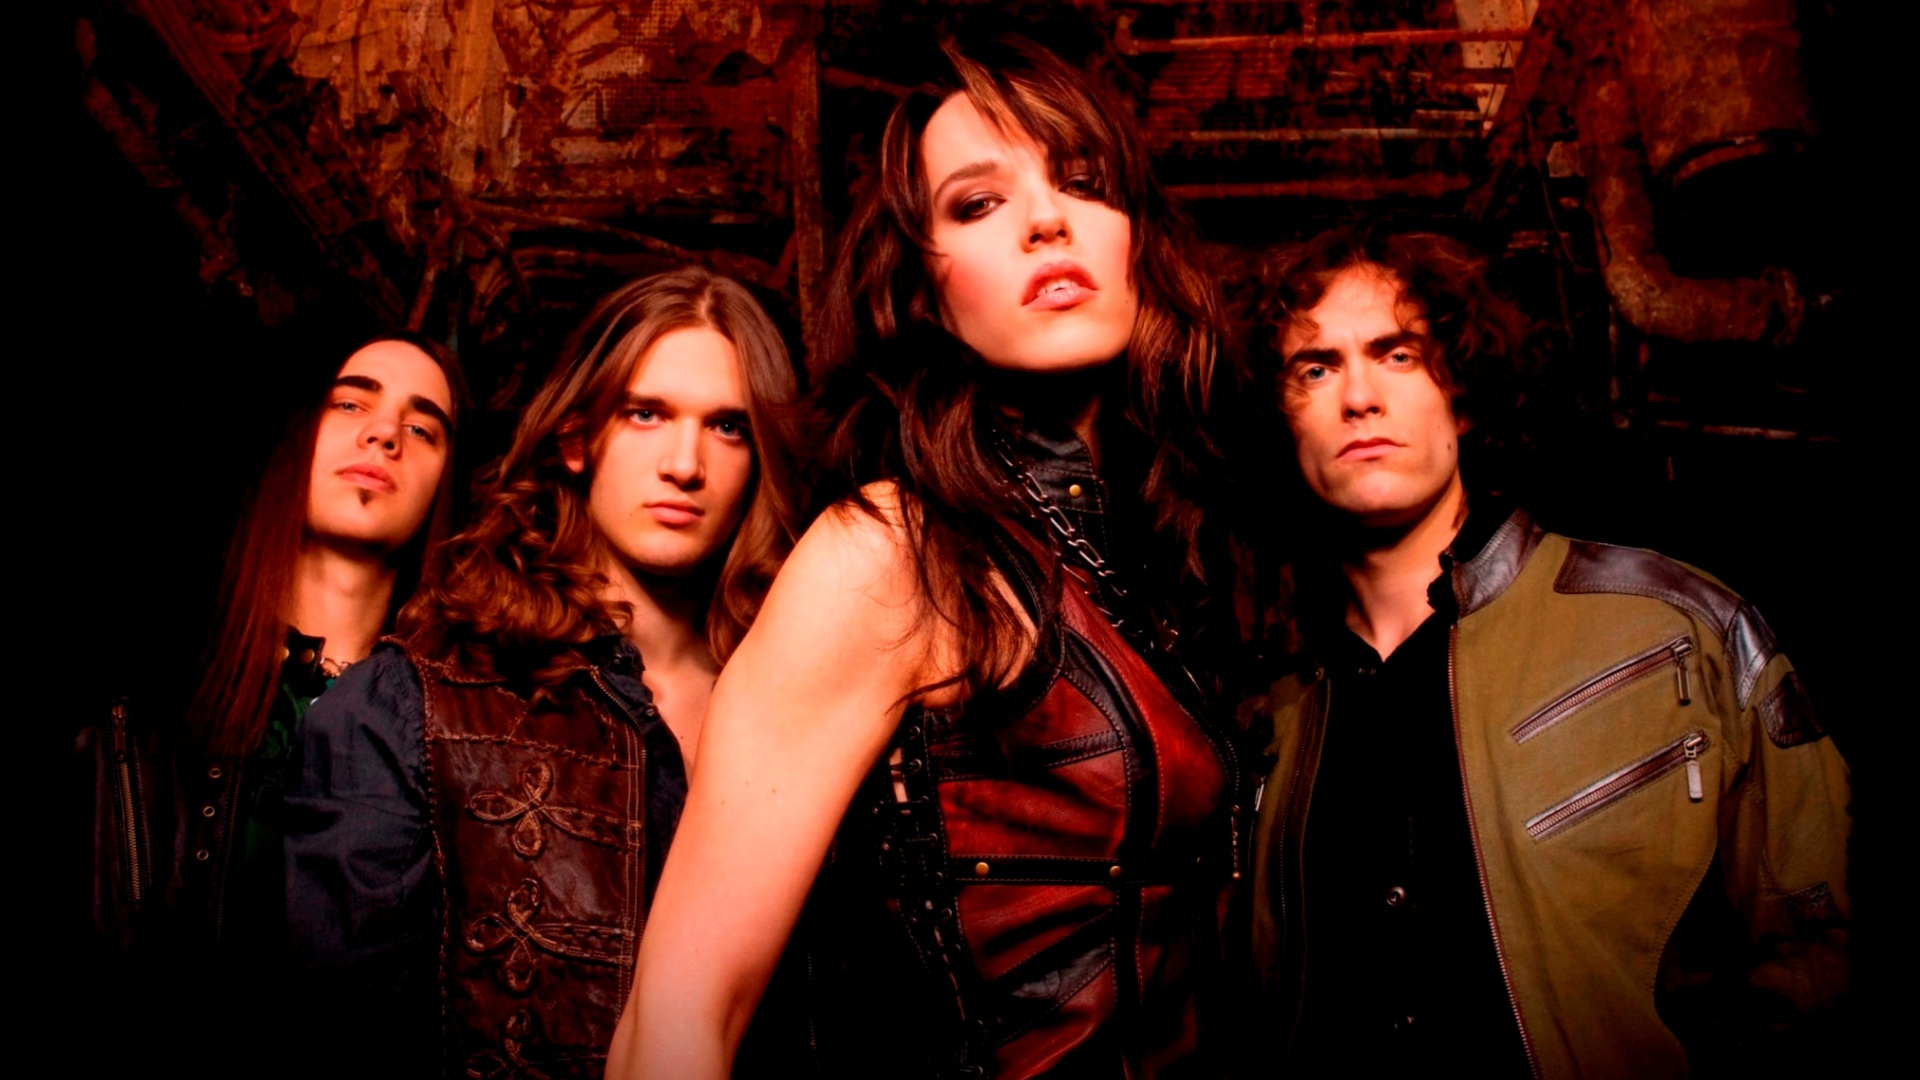 Halestorm backdrop wallpaper 1920x1080